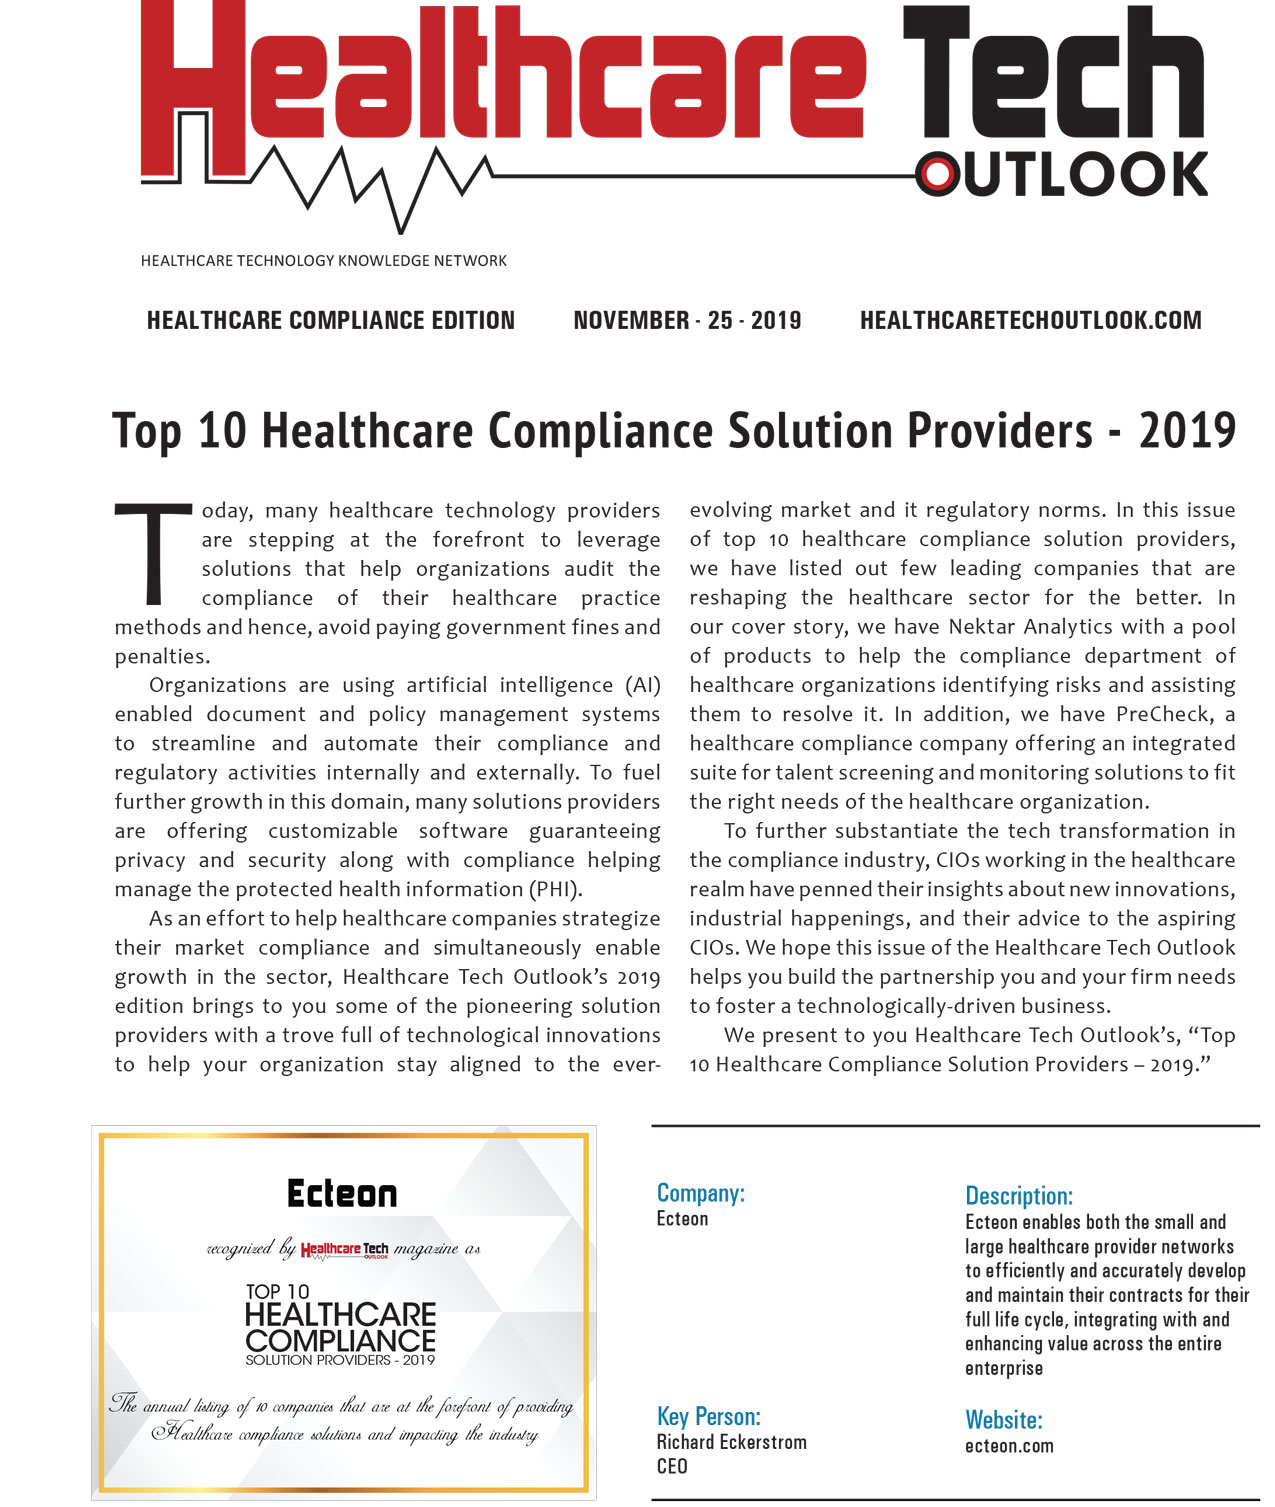 Top 10 Healthcare Compliance Solution Providers 2019, page 1